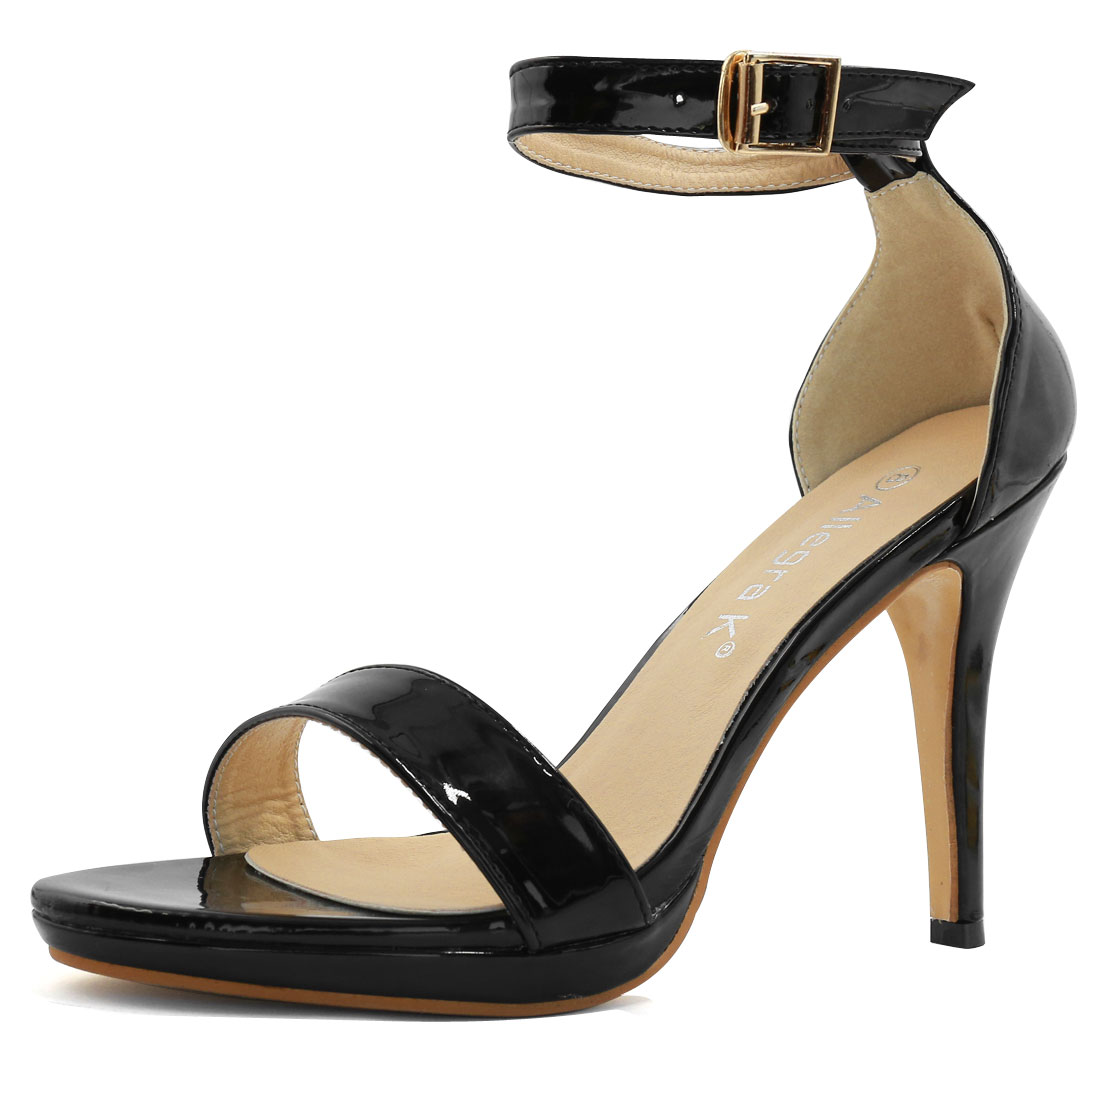 Woman Open Toe High Heel Metallic Ankle Strap Sandals Black US 8